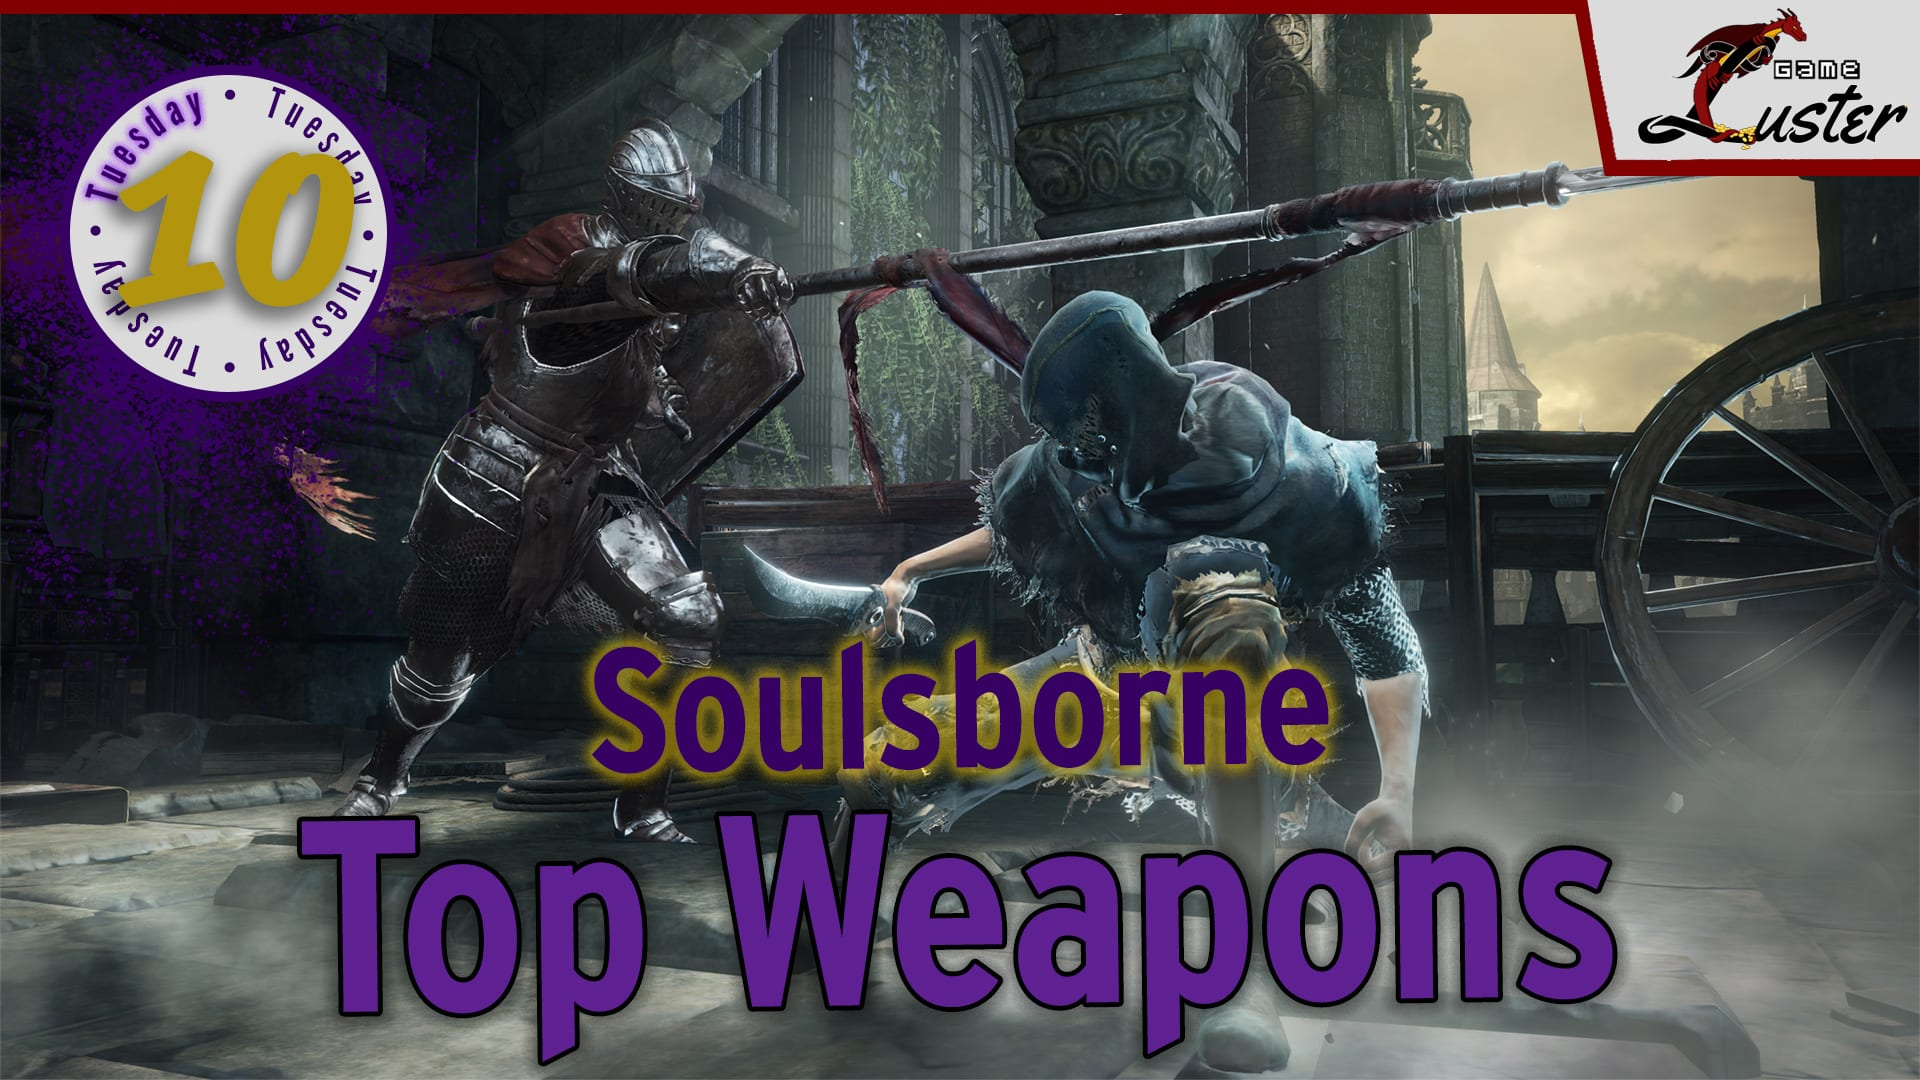 Tuesday 10 Dark Souls Bloodborne